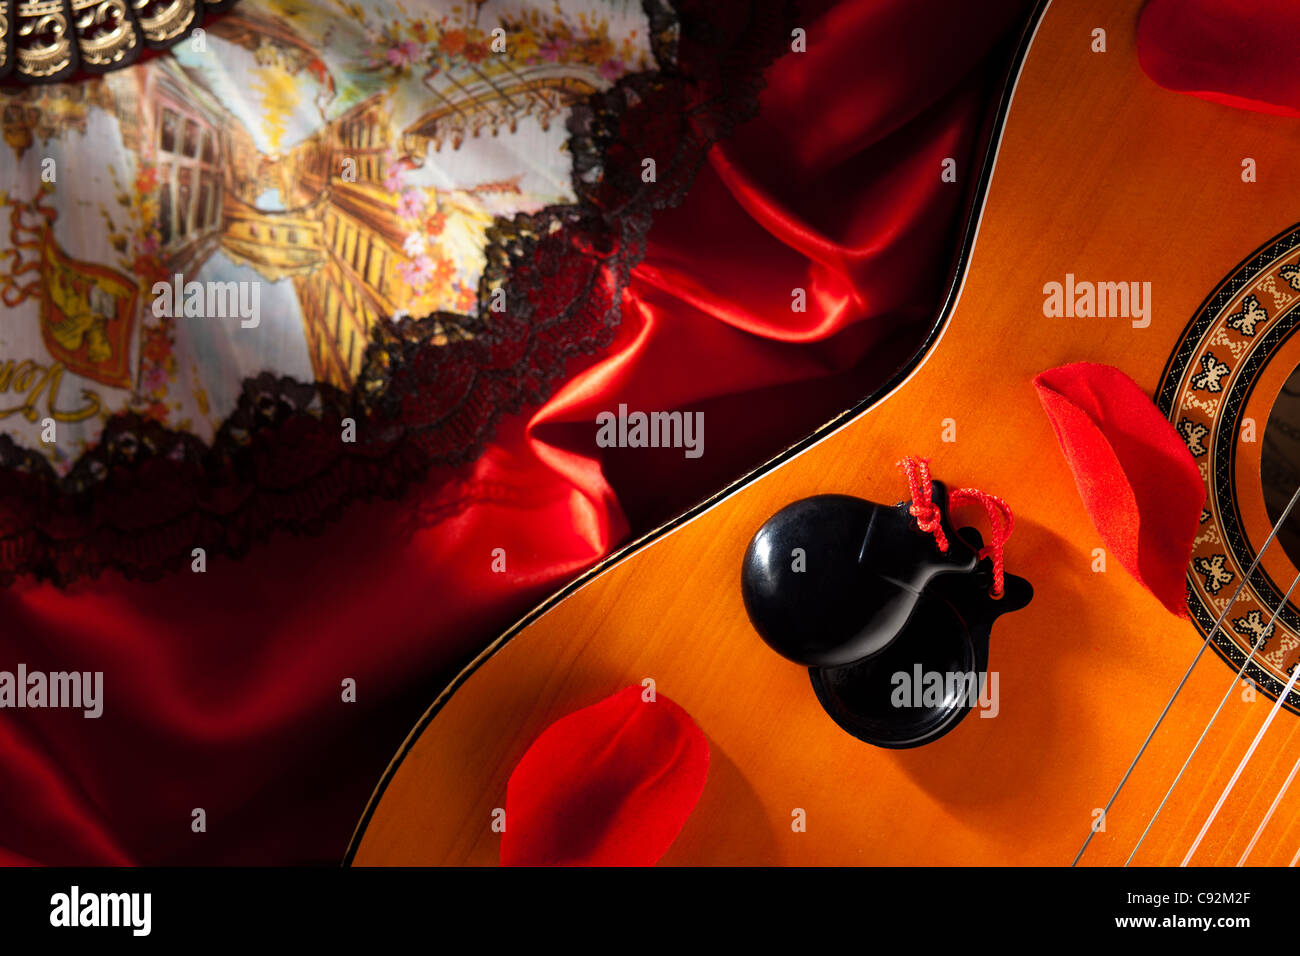 Castanets with Guitar, Hand Fan and Rose Petals - Stock Image